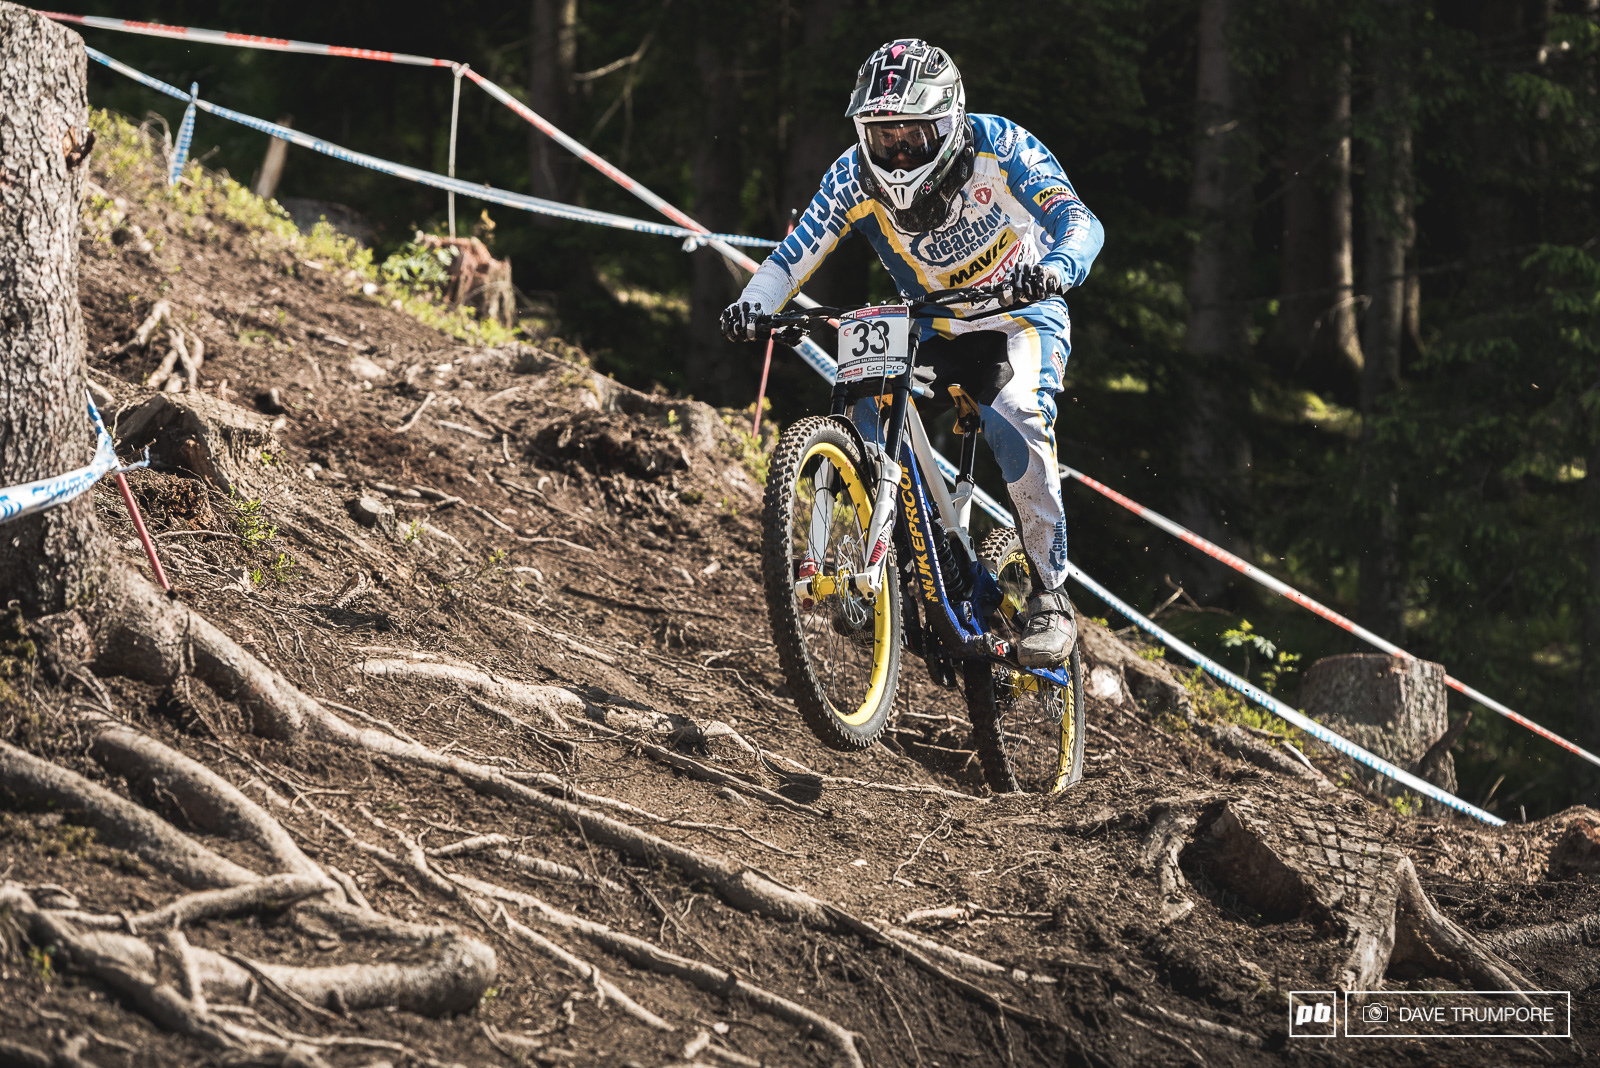 Mike Jones took a massive slam last week at Fort William but somehow he is okay and riding well enough to post one of the fastest times in timed training.